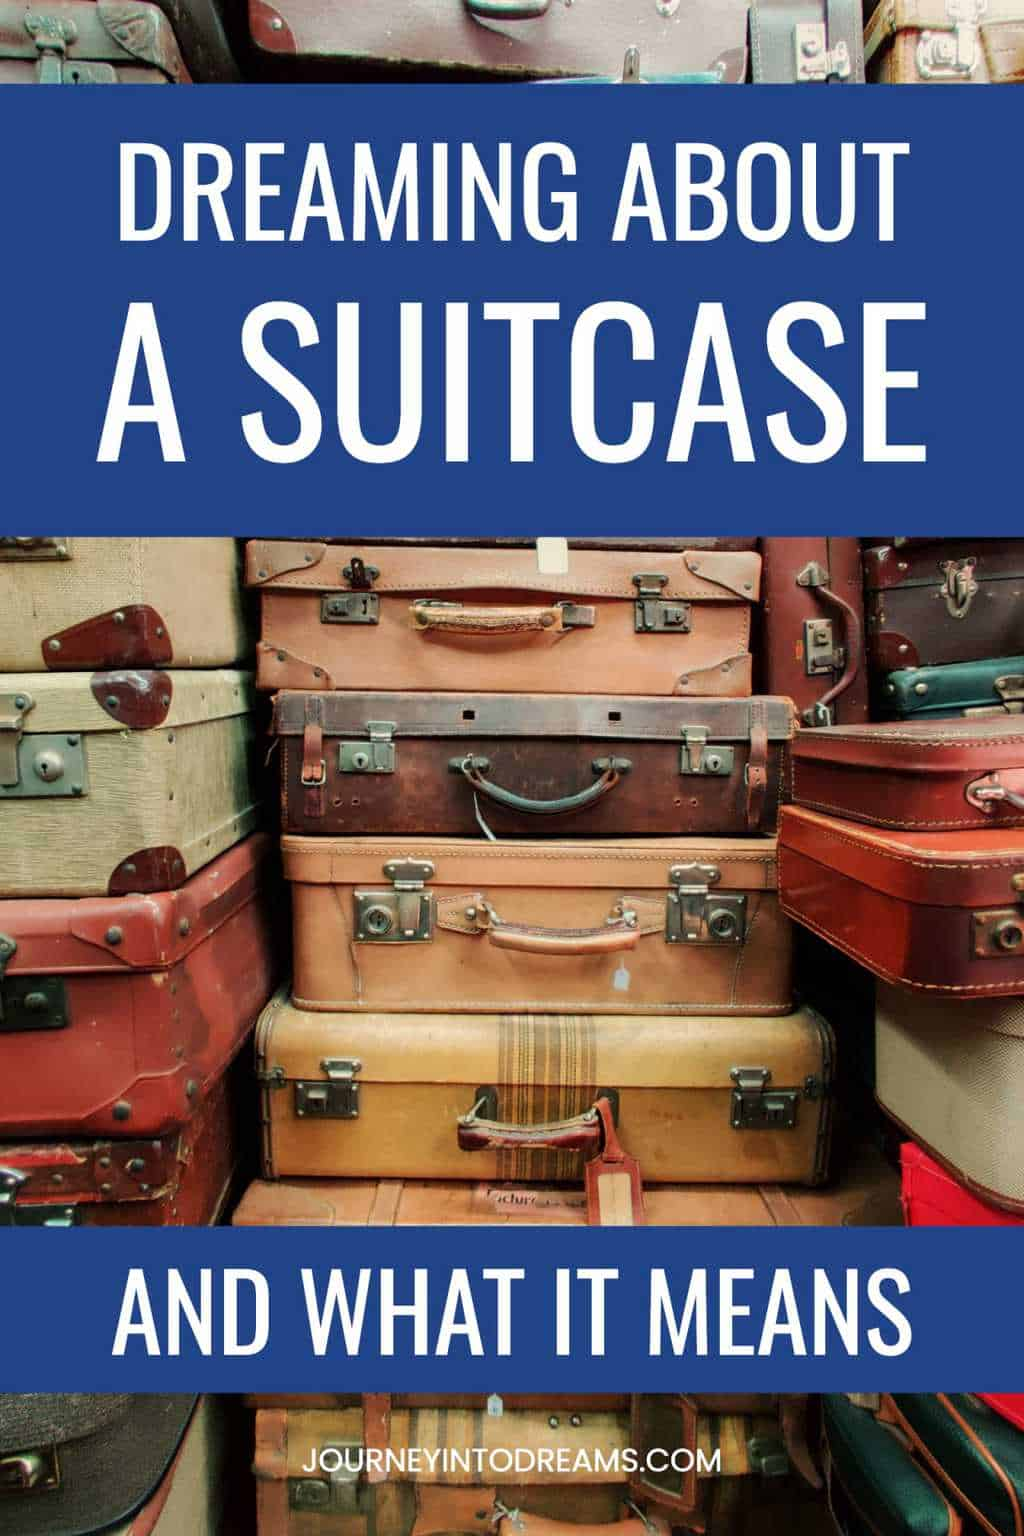 Suitcase Dream Meaning